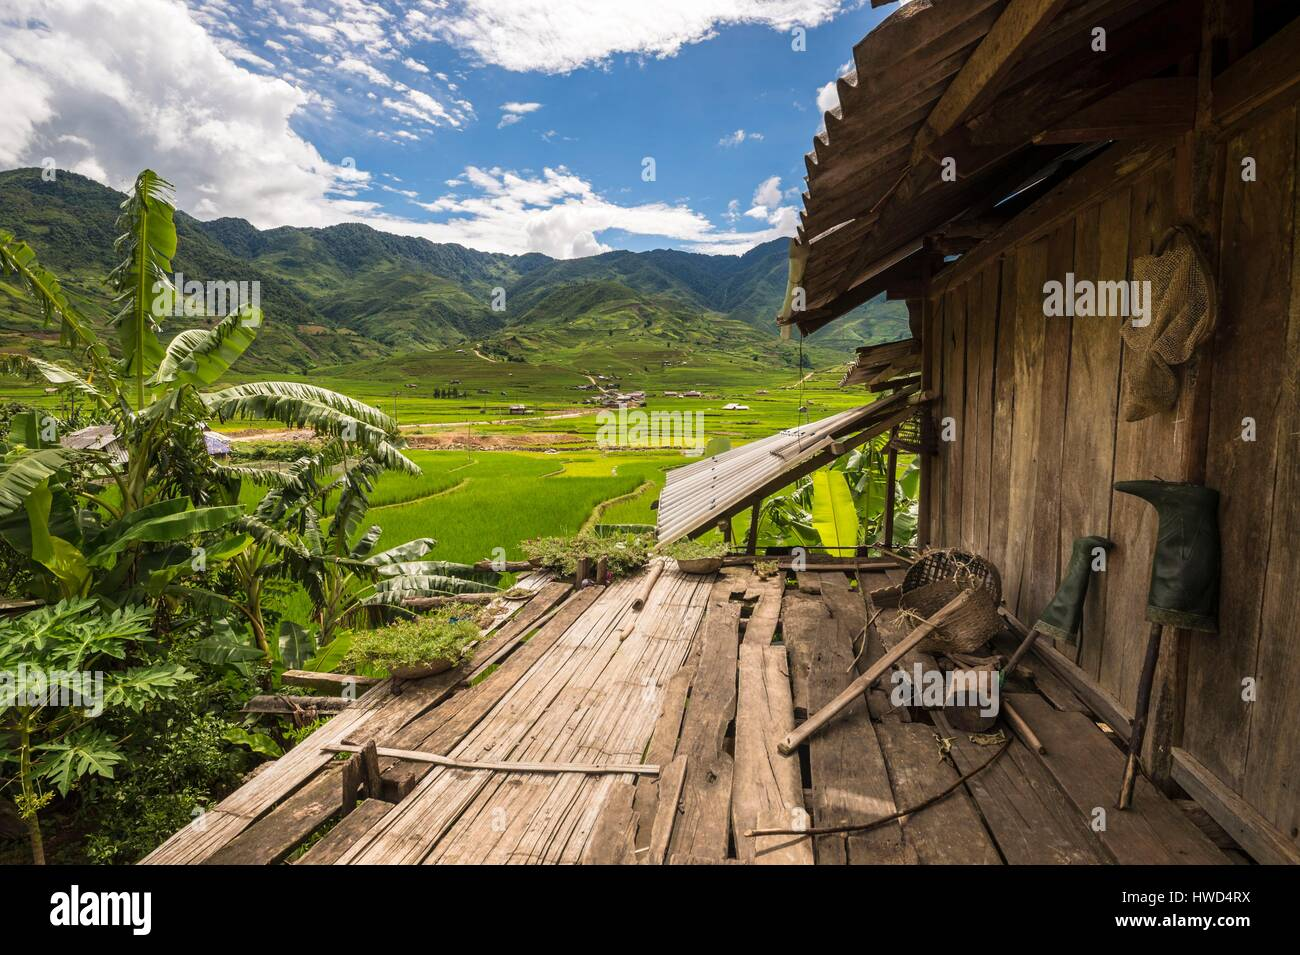 Vietnam, Mountain Range Of Hoang Lien Son, Village Of Tu Le, Overlooking  The Rice Fields From The Terrace Of A Wooden House On Stilts